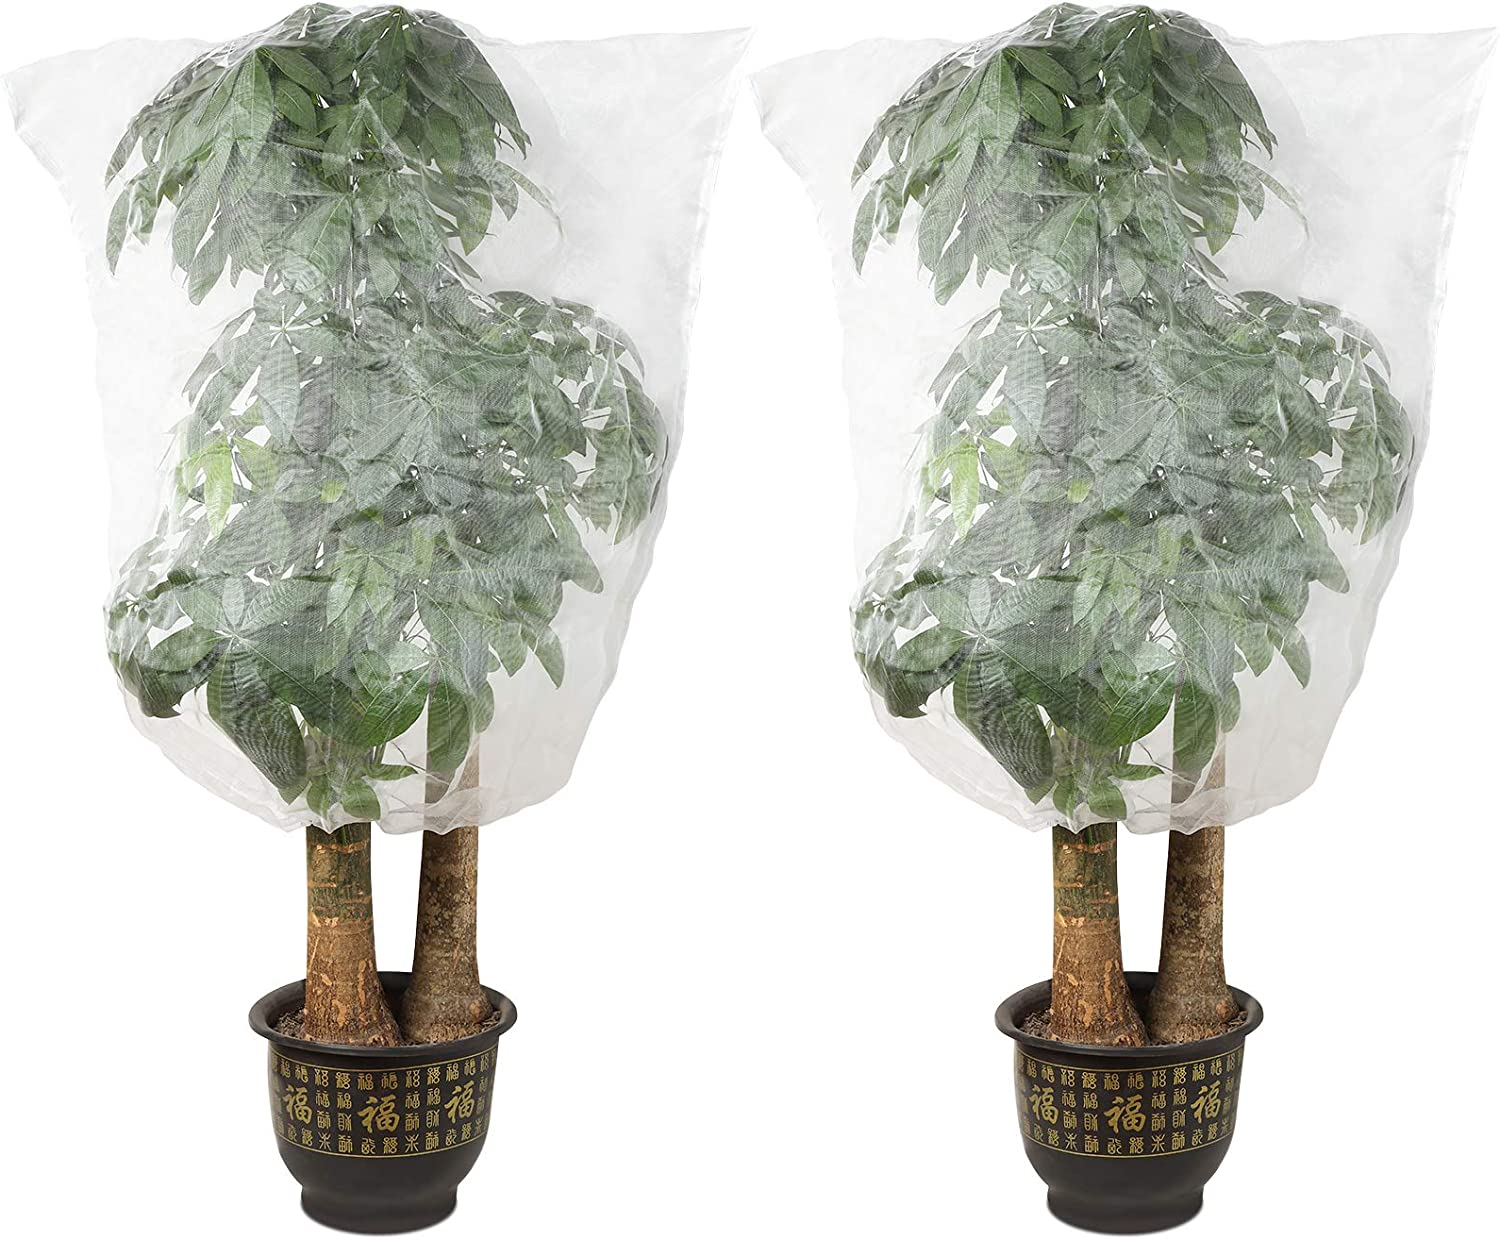 Plant Net Bags with Adjustable Drawstring Mesh Fruit Bags for Vegetables Fruit Flowers(2 Pieces, 47 x 55 Inch)